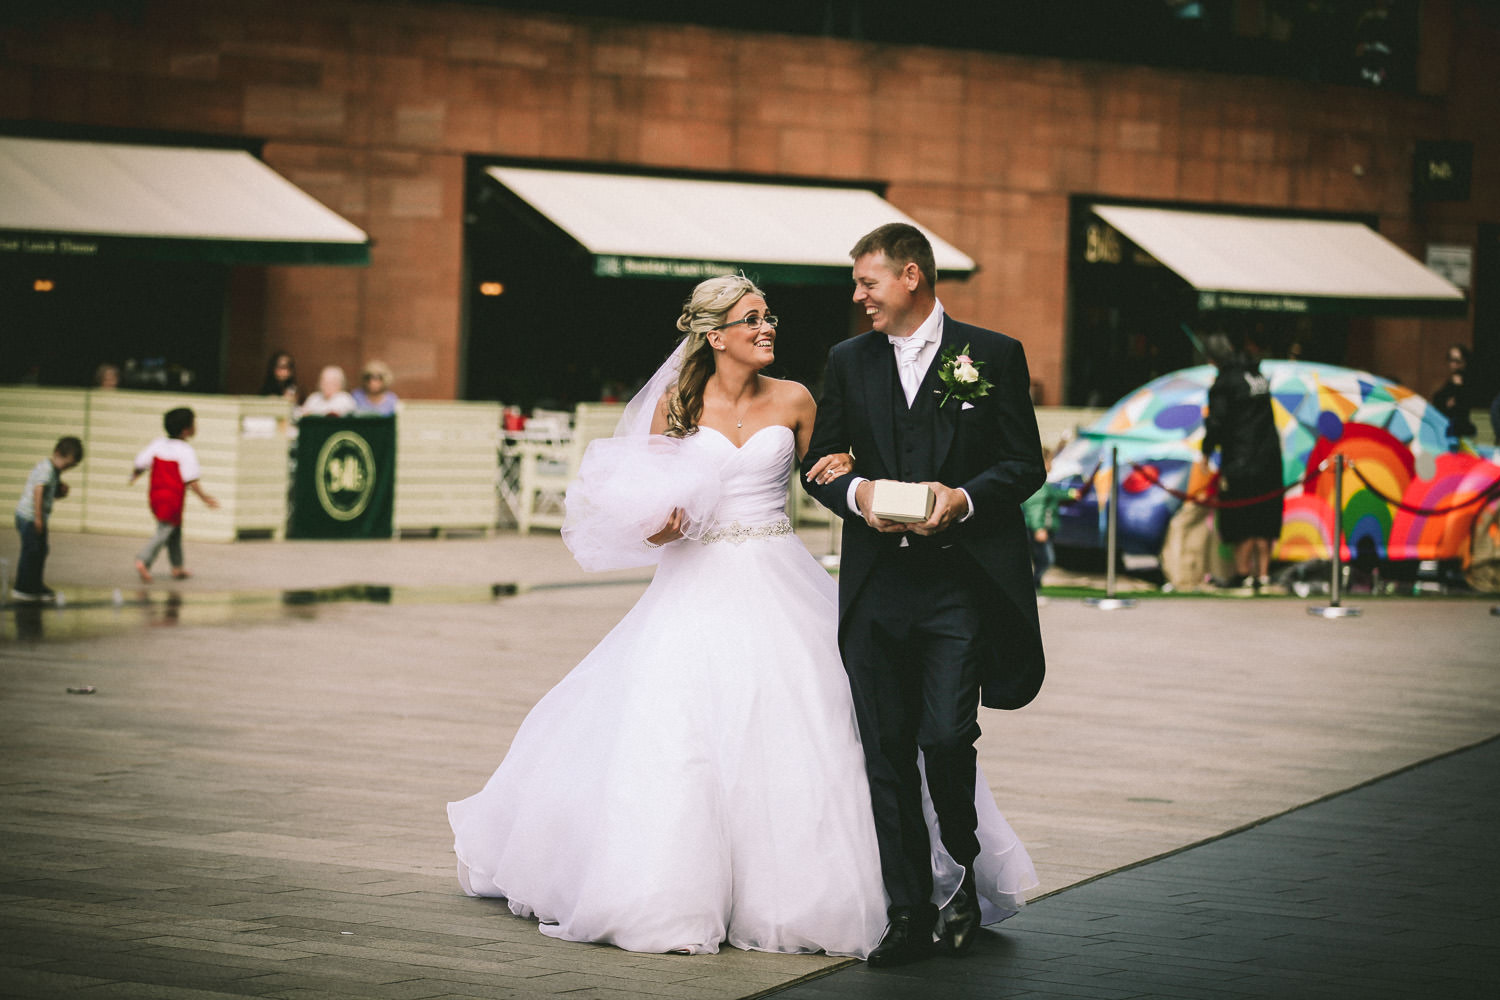 Bride and groom walking Liverpool One. Bride giving Groom gift of Rolex watch